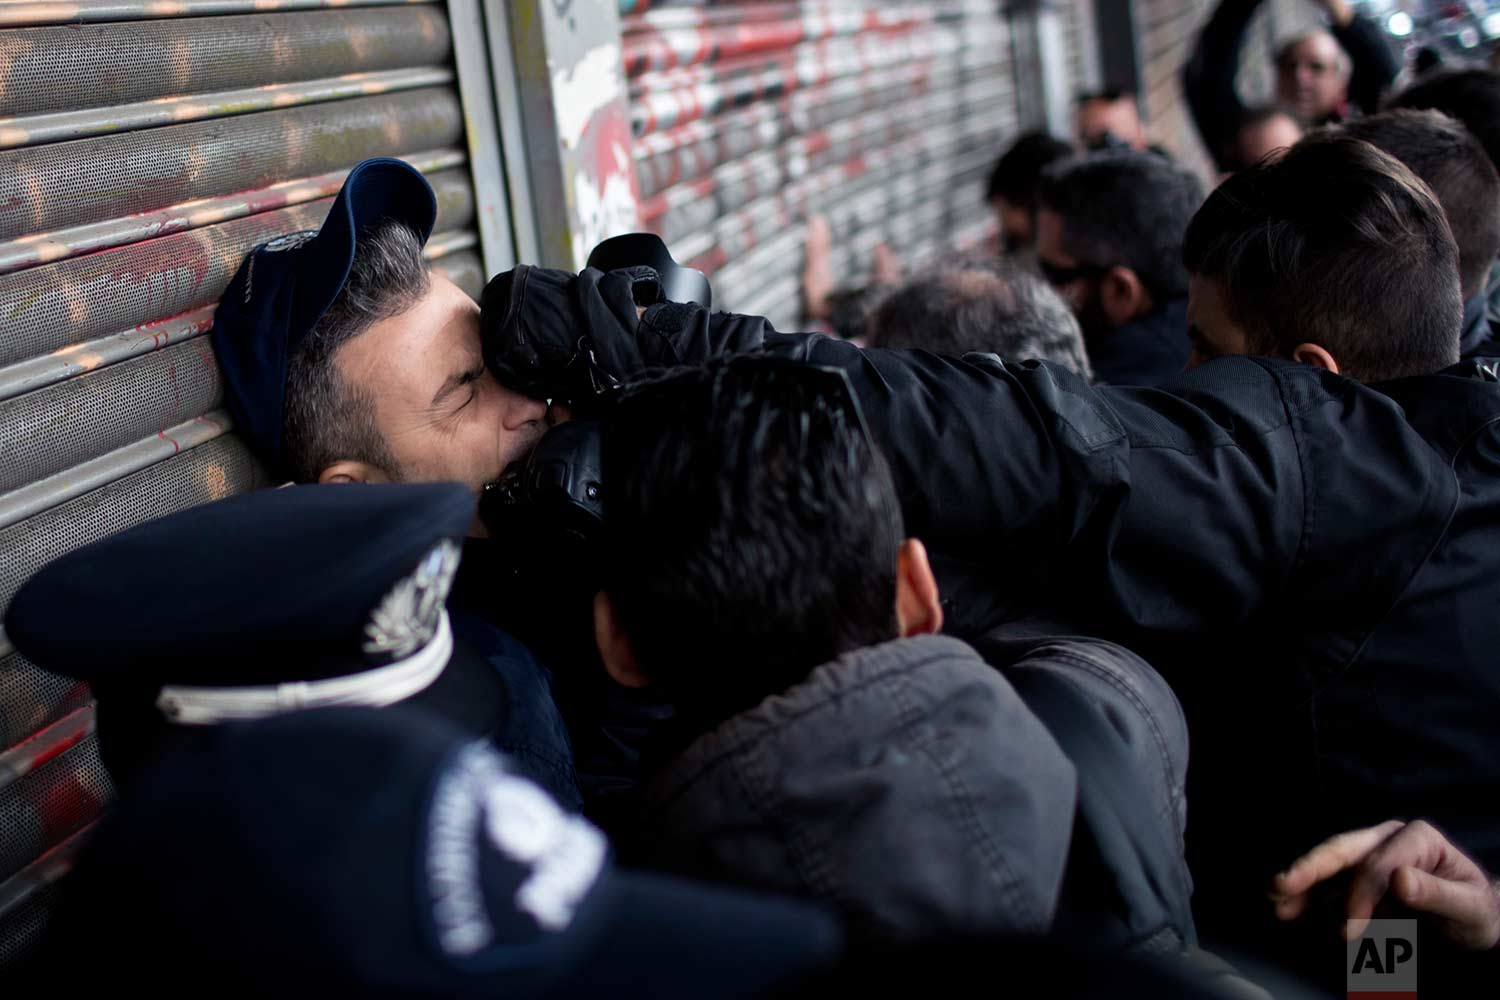 A police officer guarding the main entrance of the Labor ministry is punched by a protester as Communist-backed unionists try to enter the building during a protest in central Athens, Tuesday, Dec. 5, 2017. (AP Photo/Petros Giannakouris)